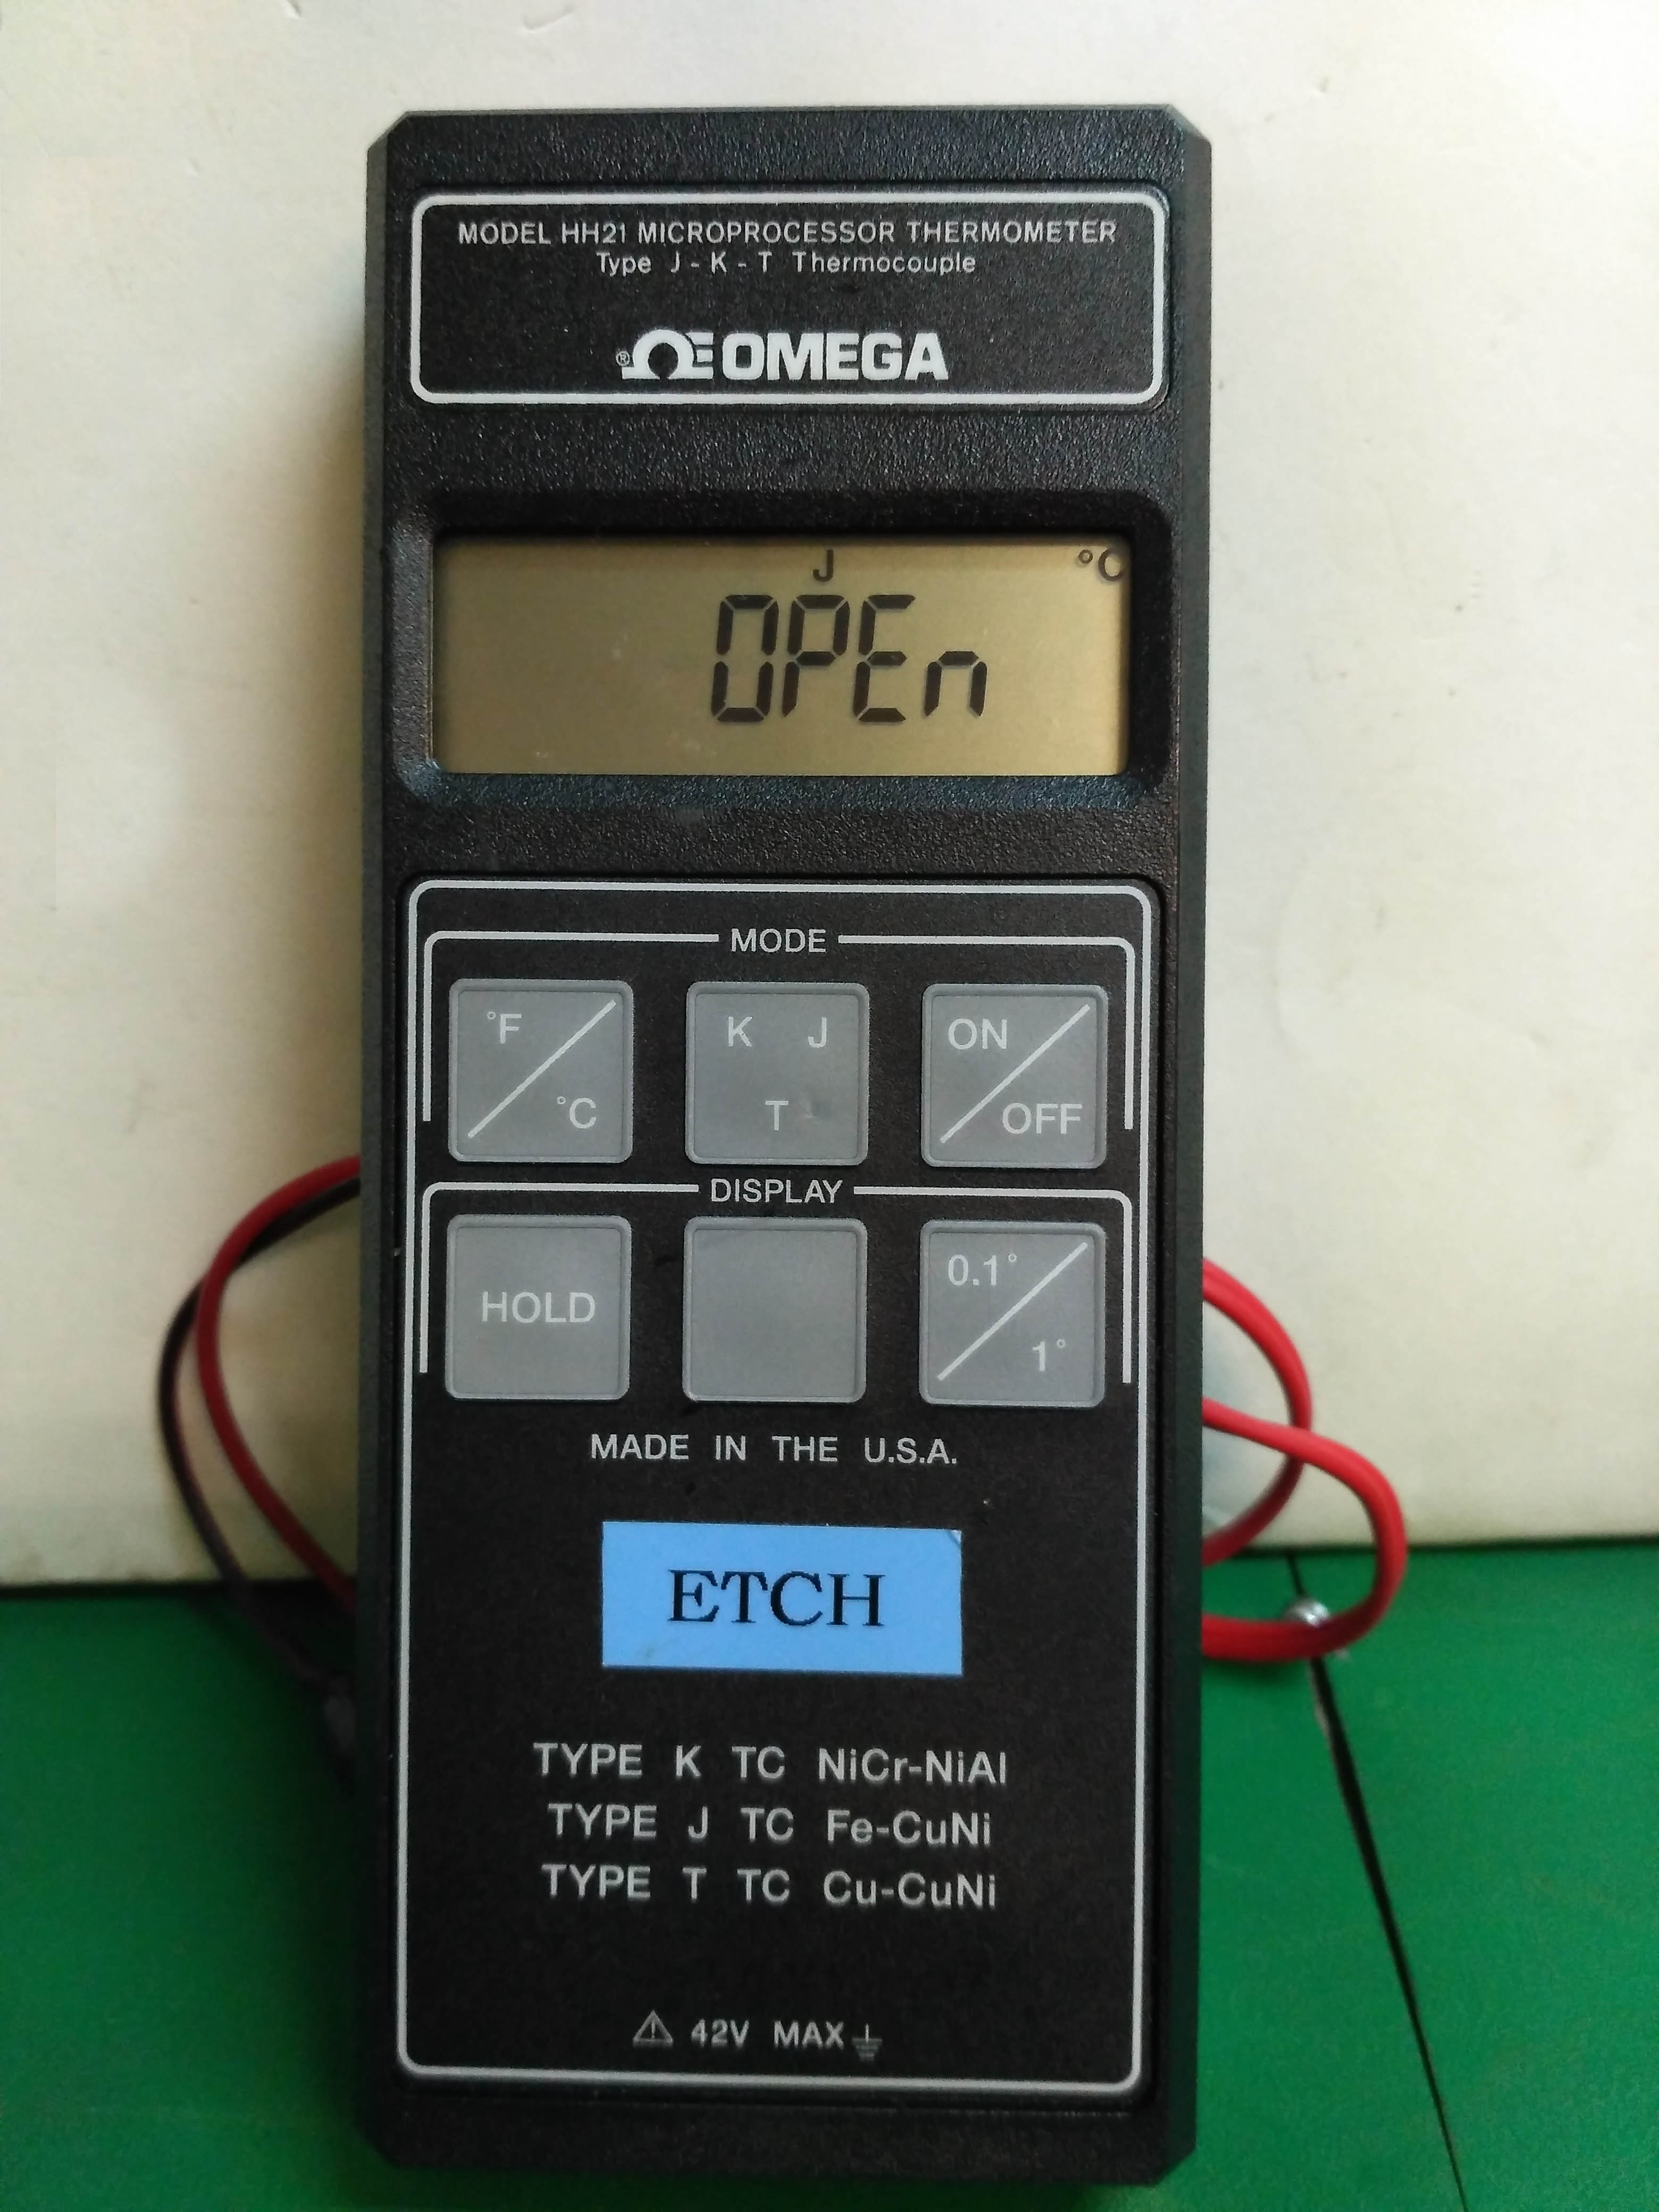 5181 OMEGA MICROPROCESSOR THERMOMETER TYPE J-K-T